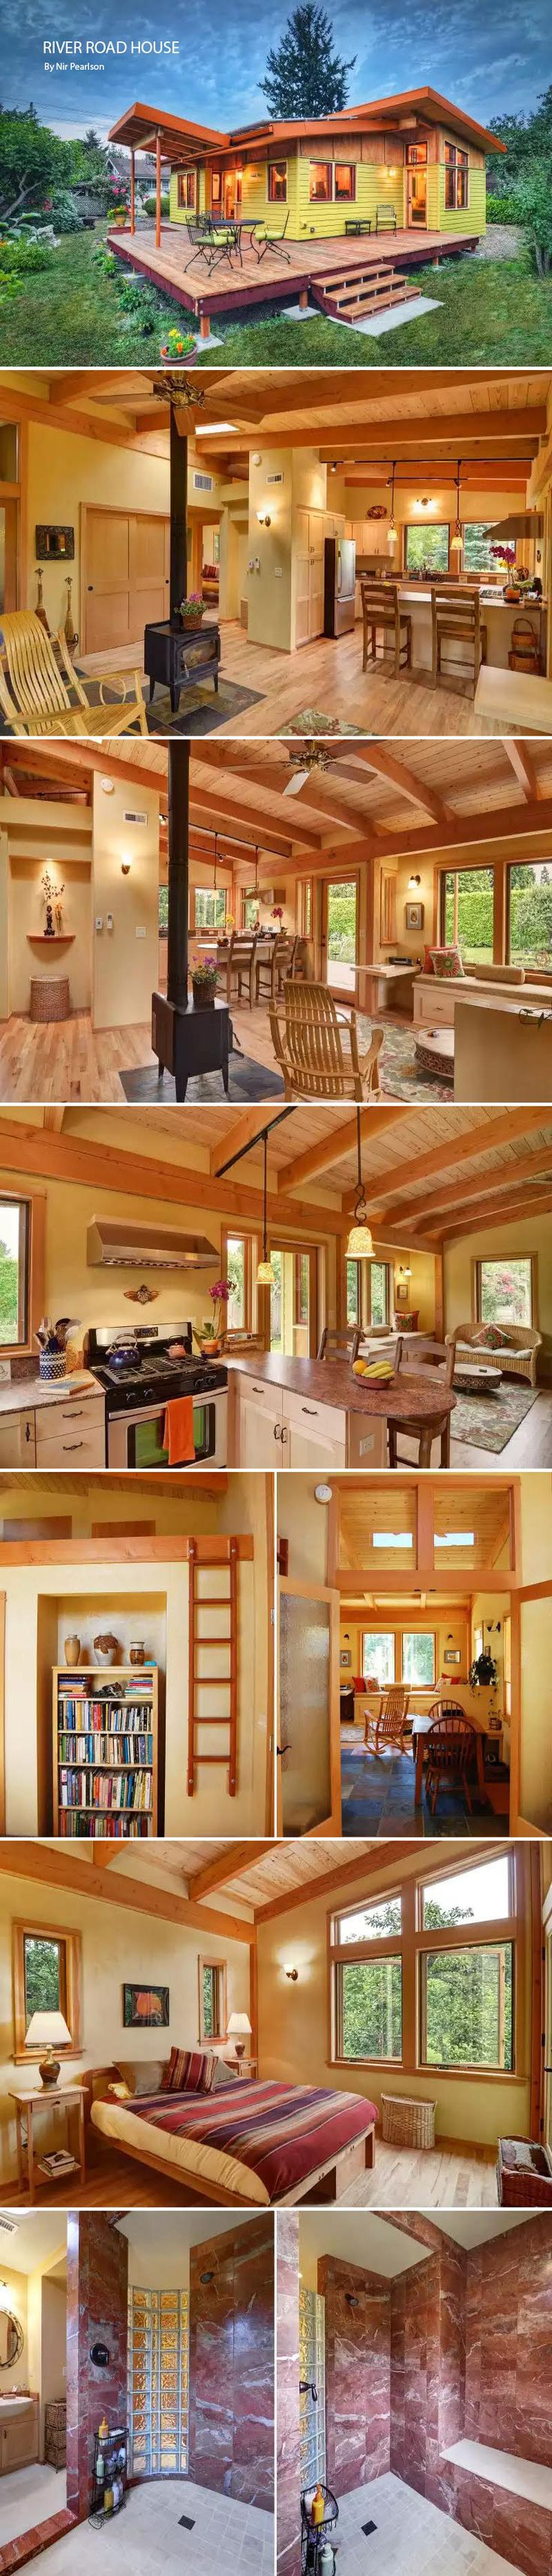 141 best house ideas images on pinterest small houses dreams and